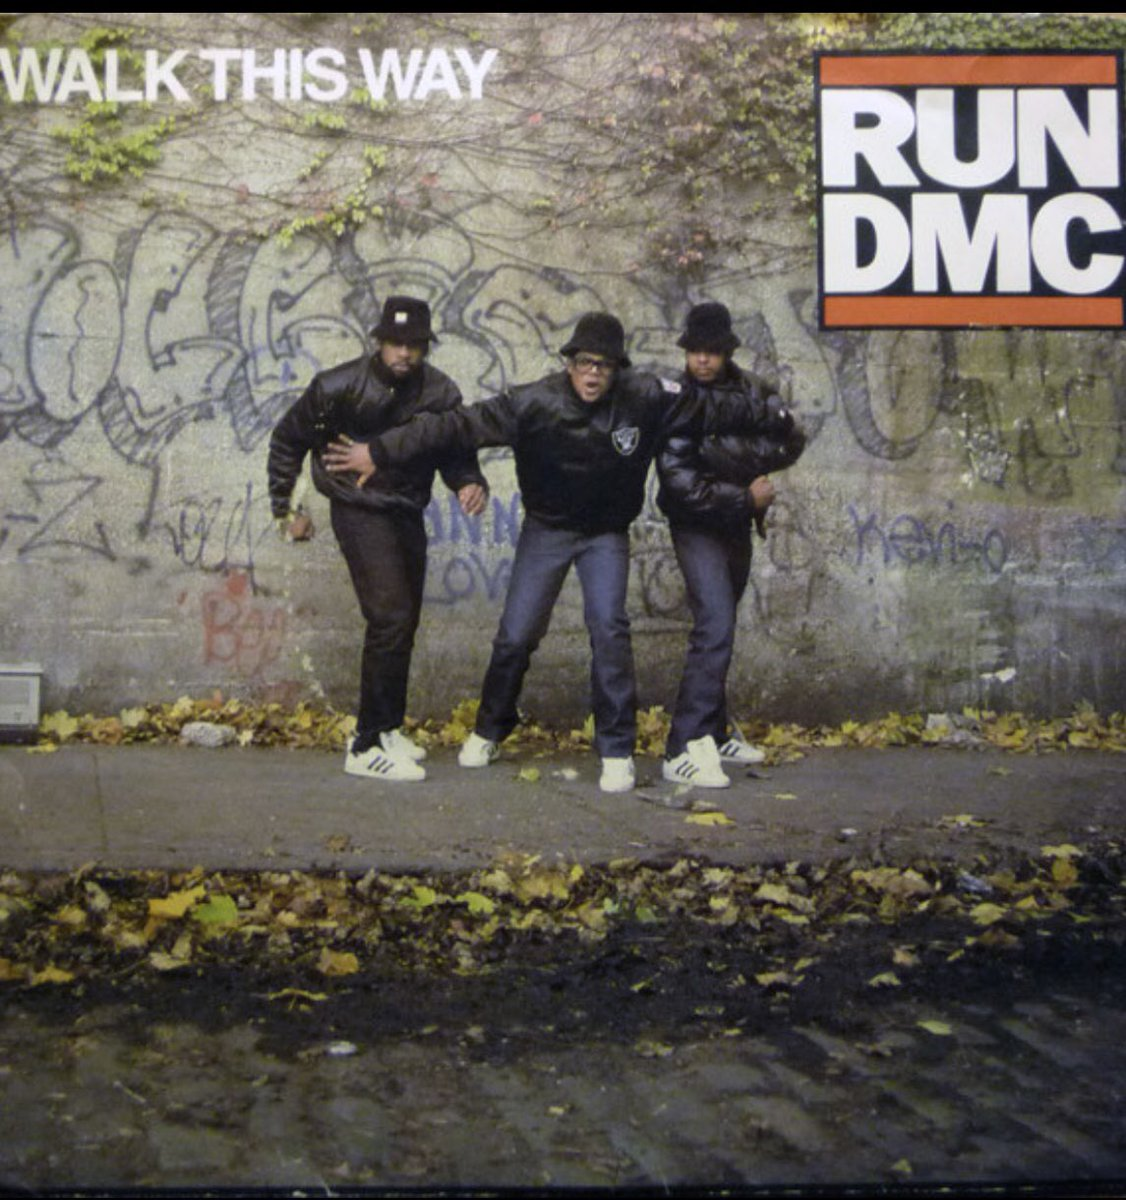 "Which 80s SONG Do You Prefer?  Run-DMC ""Walk This Way"" (1986) OR Beastie Boys (You Gotta) ""Fight For Your Right"" (To Party) 1987  @OfficialRunDMC #RunDMC @beastieboys #BeastieBoys #Music #Rap #Rock #HipHop #Records #Vinyl #Radio #Classic #1980s #80s #80sThen80sNow pic.twitter.com/aMHBAAhTPX"